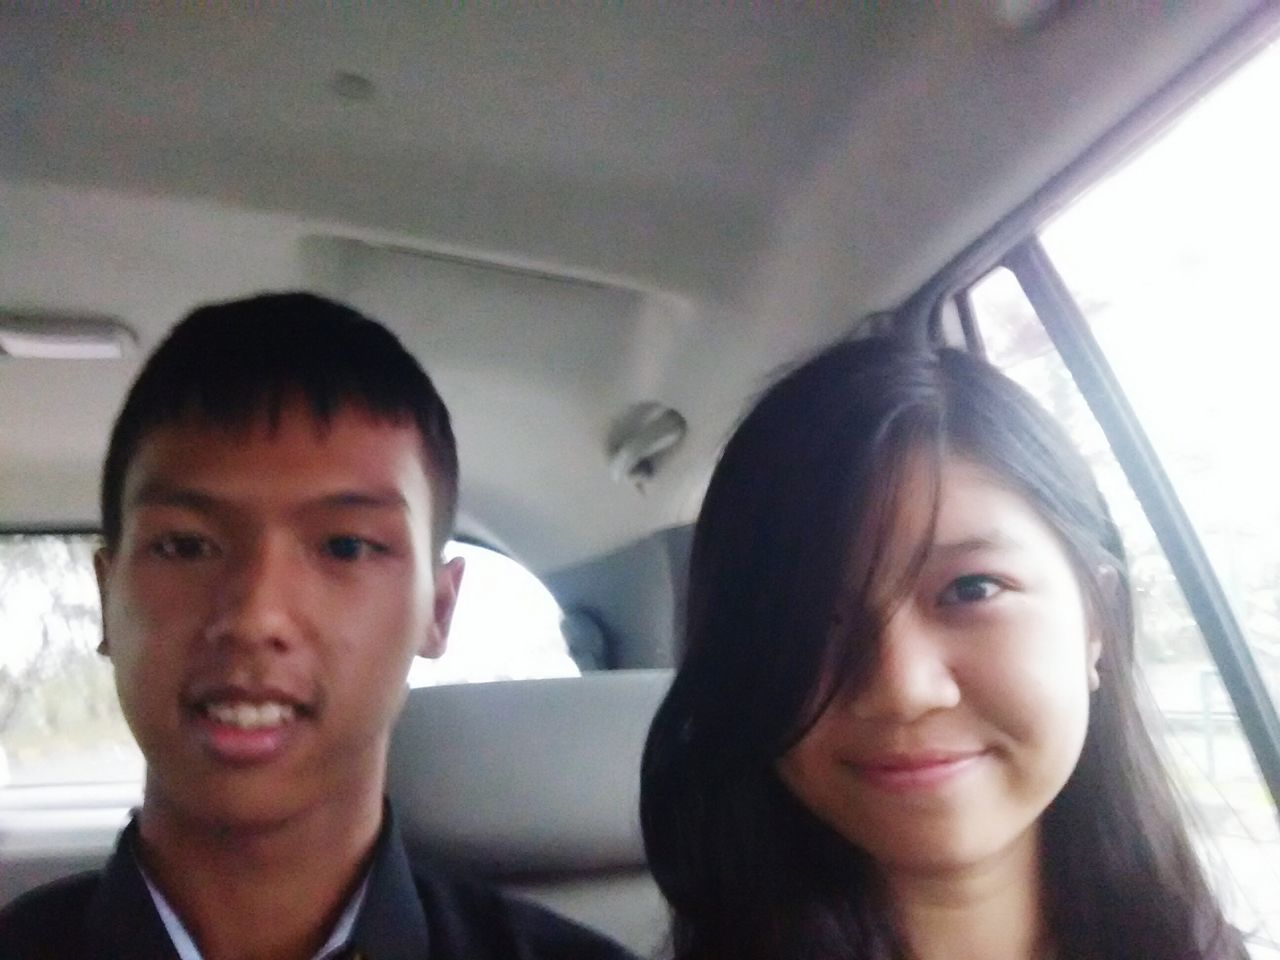 two people, vehicle interior, transportation, car interior, car, looking at camera, real people, young adult, young women, portrait, land vehicle, front view, mode of transport, togetherness, smiling, headshot, lifestyles, young men, day, happiness, close-up, outdoors